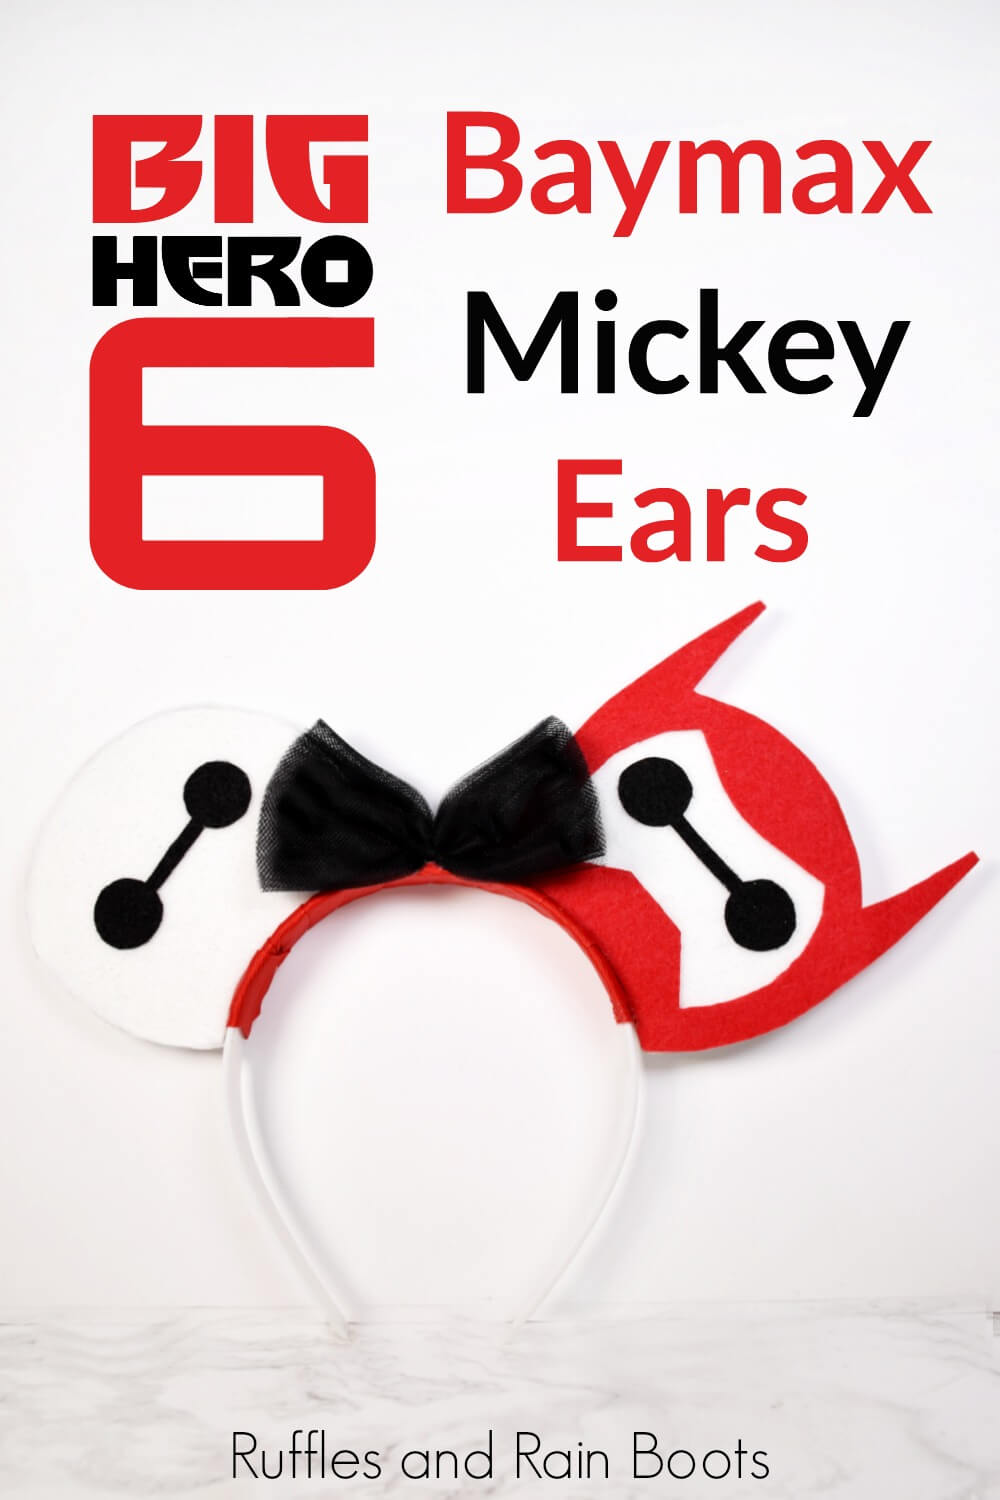 DIY mouse ears standing up on white background with text which reads Baymax Mickey Ears from Big Hero 6